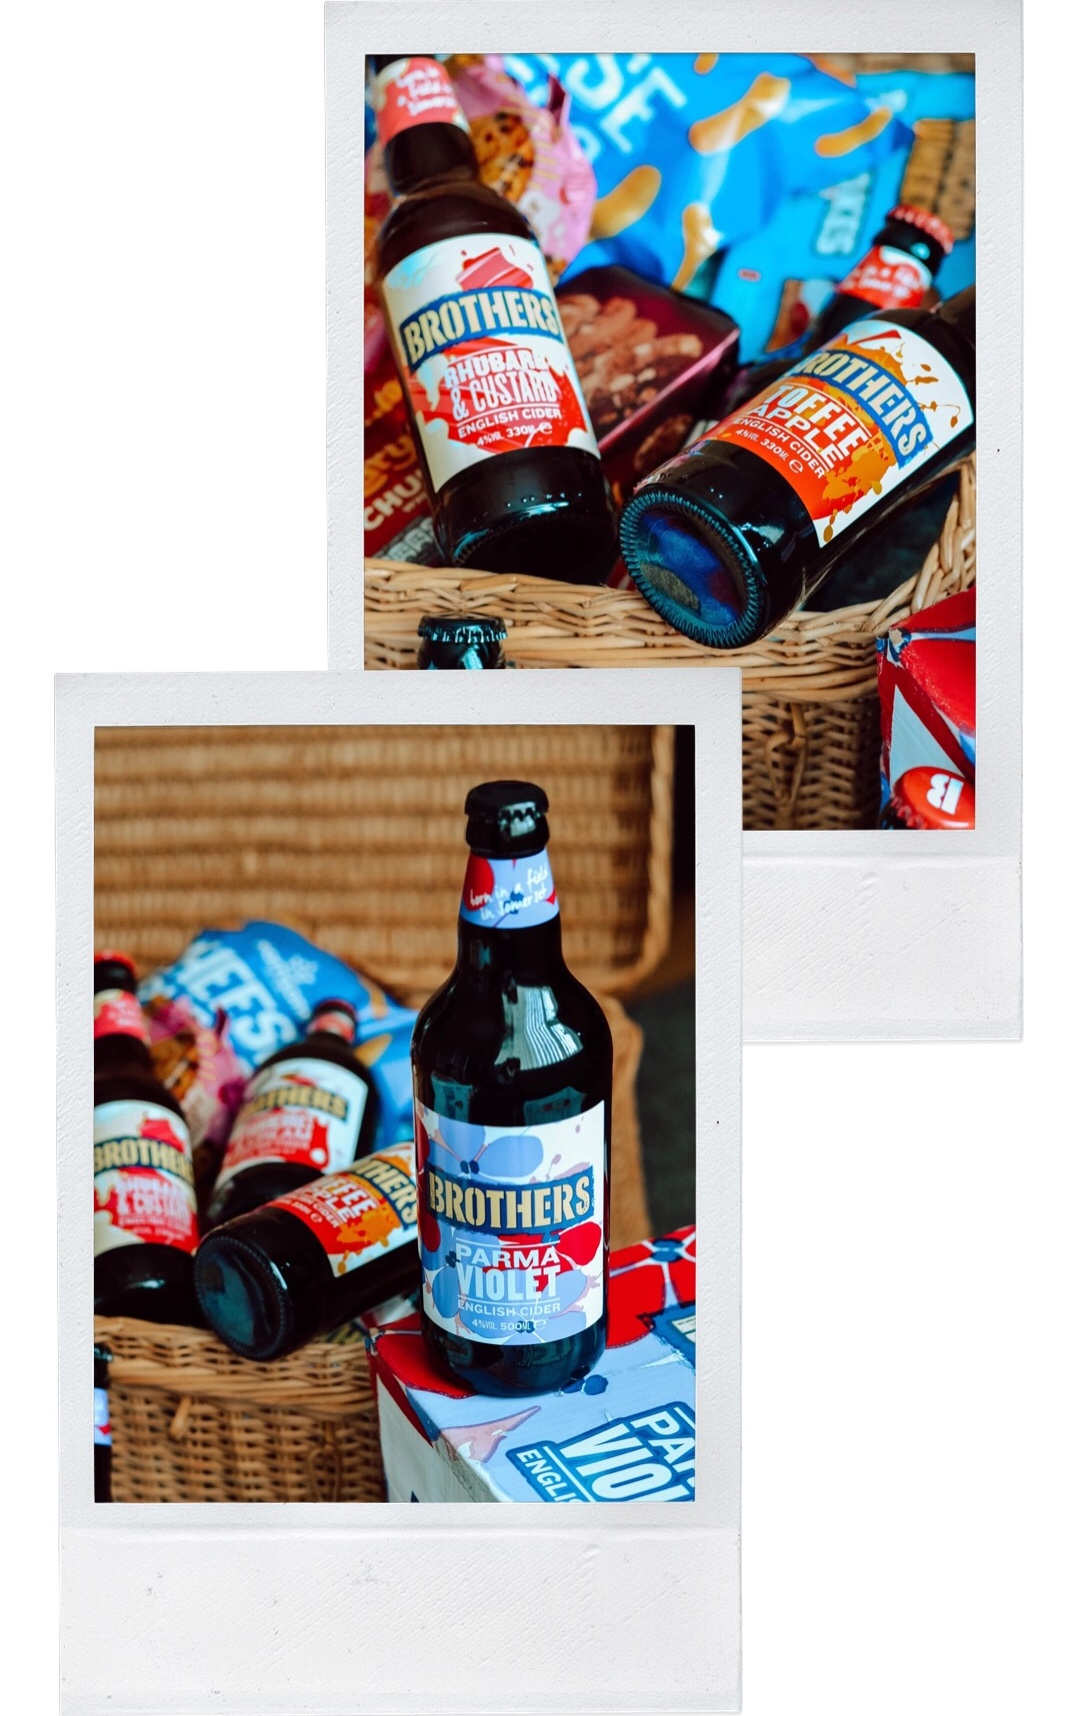 brothers cider hamper